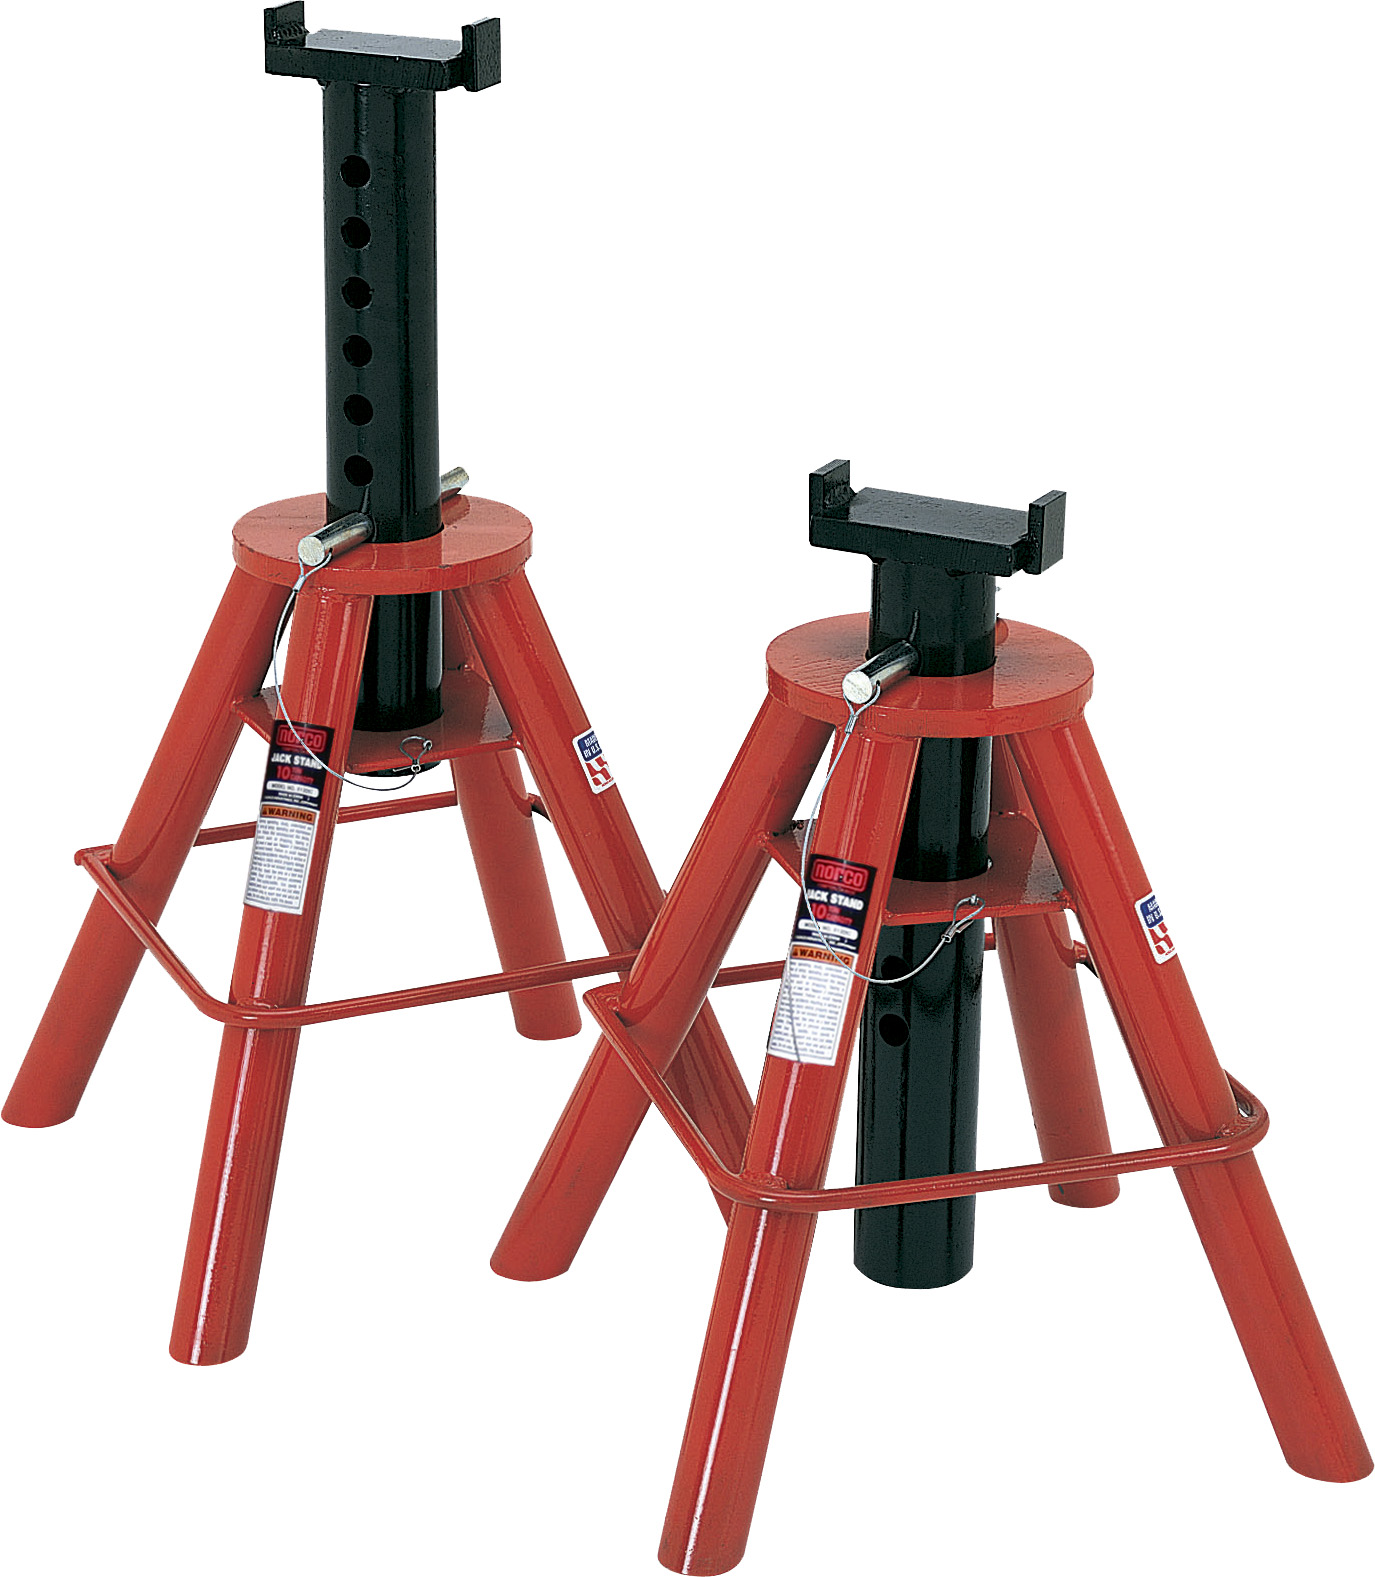 a lincoln but saw industrial jacks market science just the it in unique systems potential an is as create history htm quicklub enough art to new of application these this much distributors company